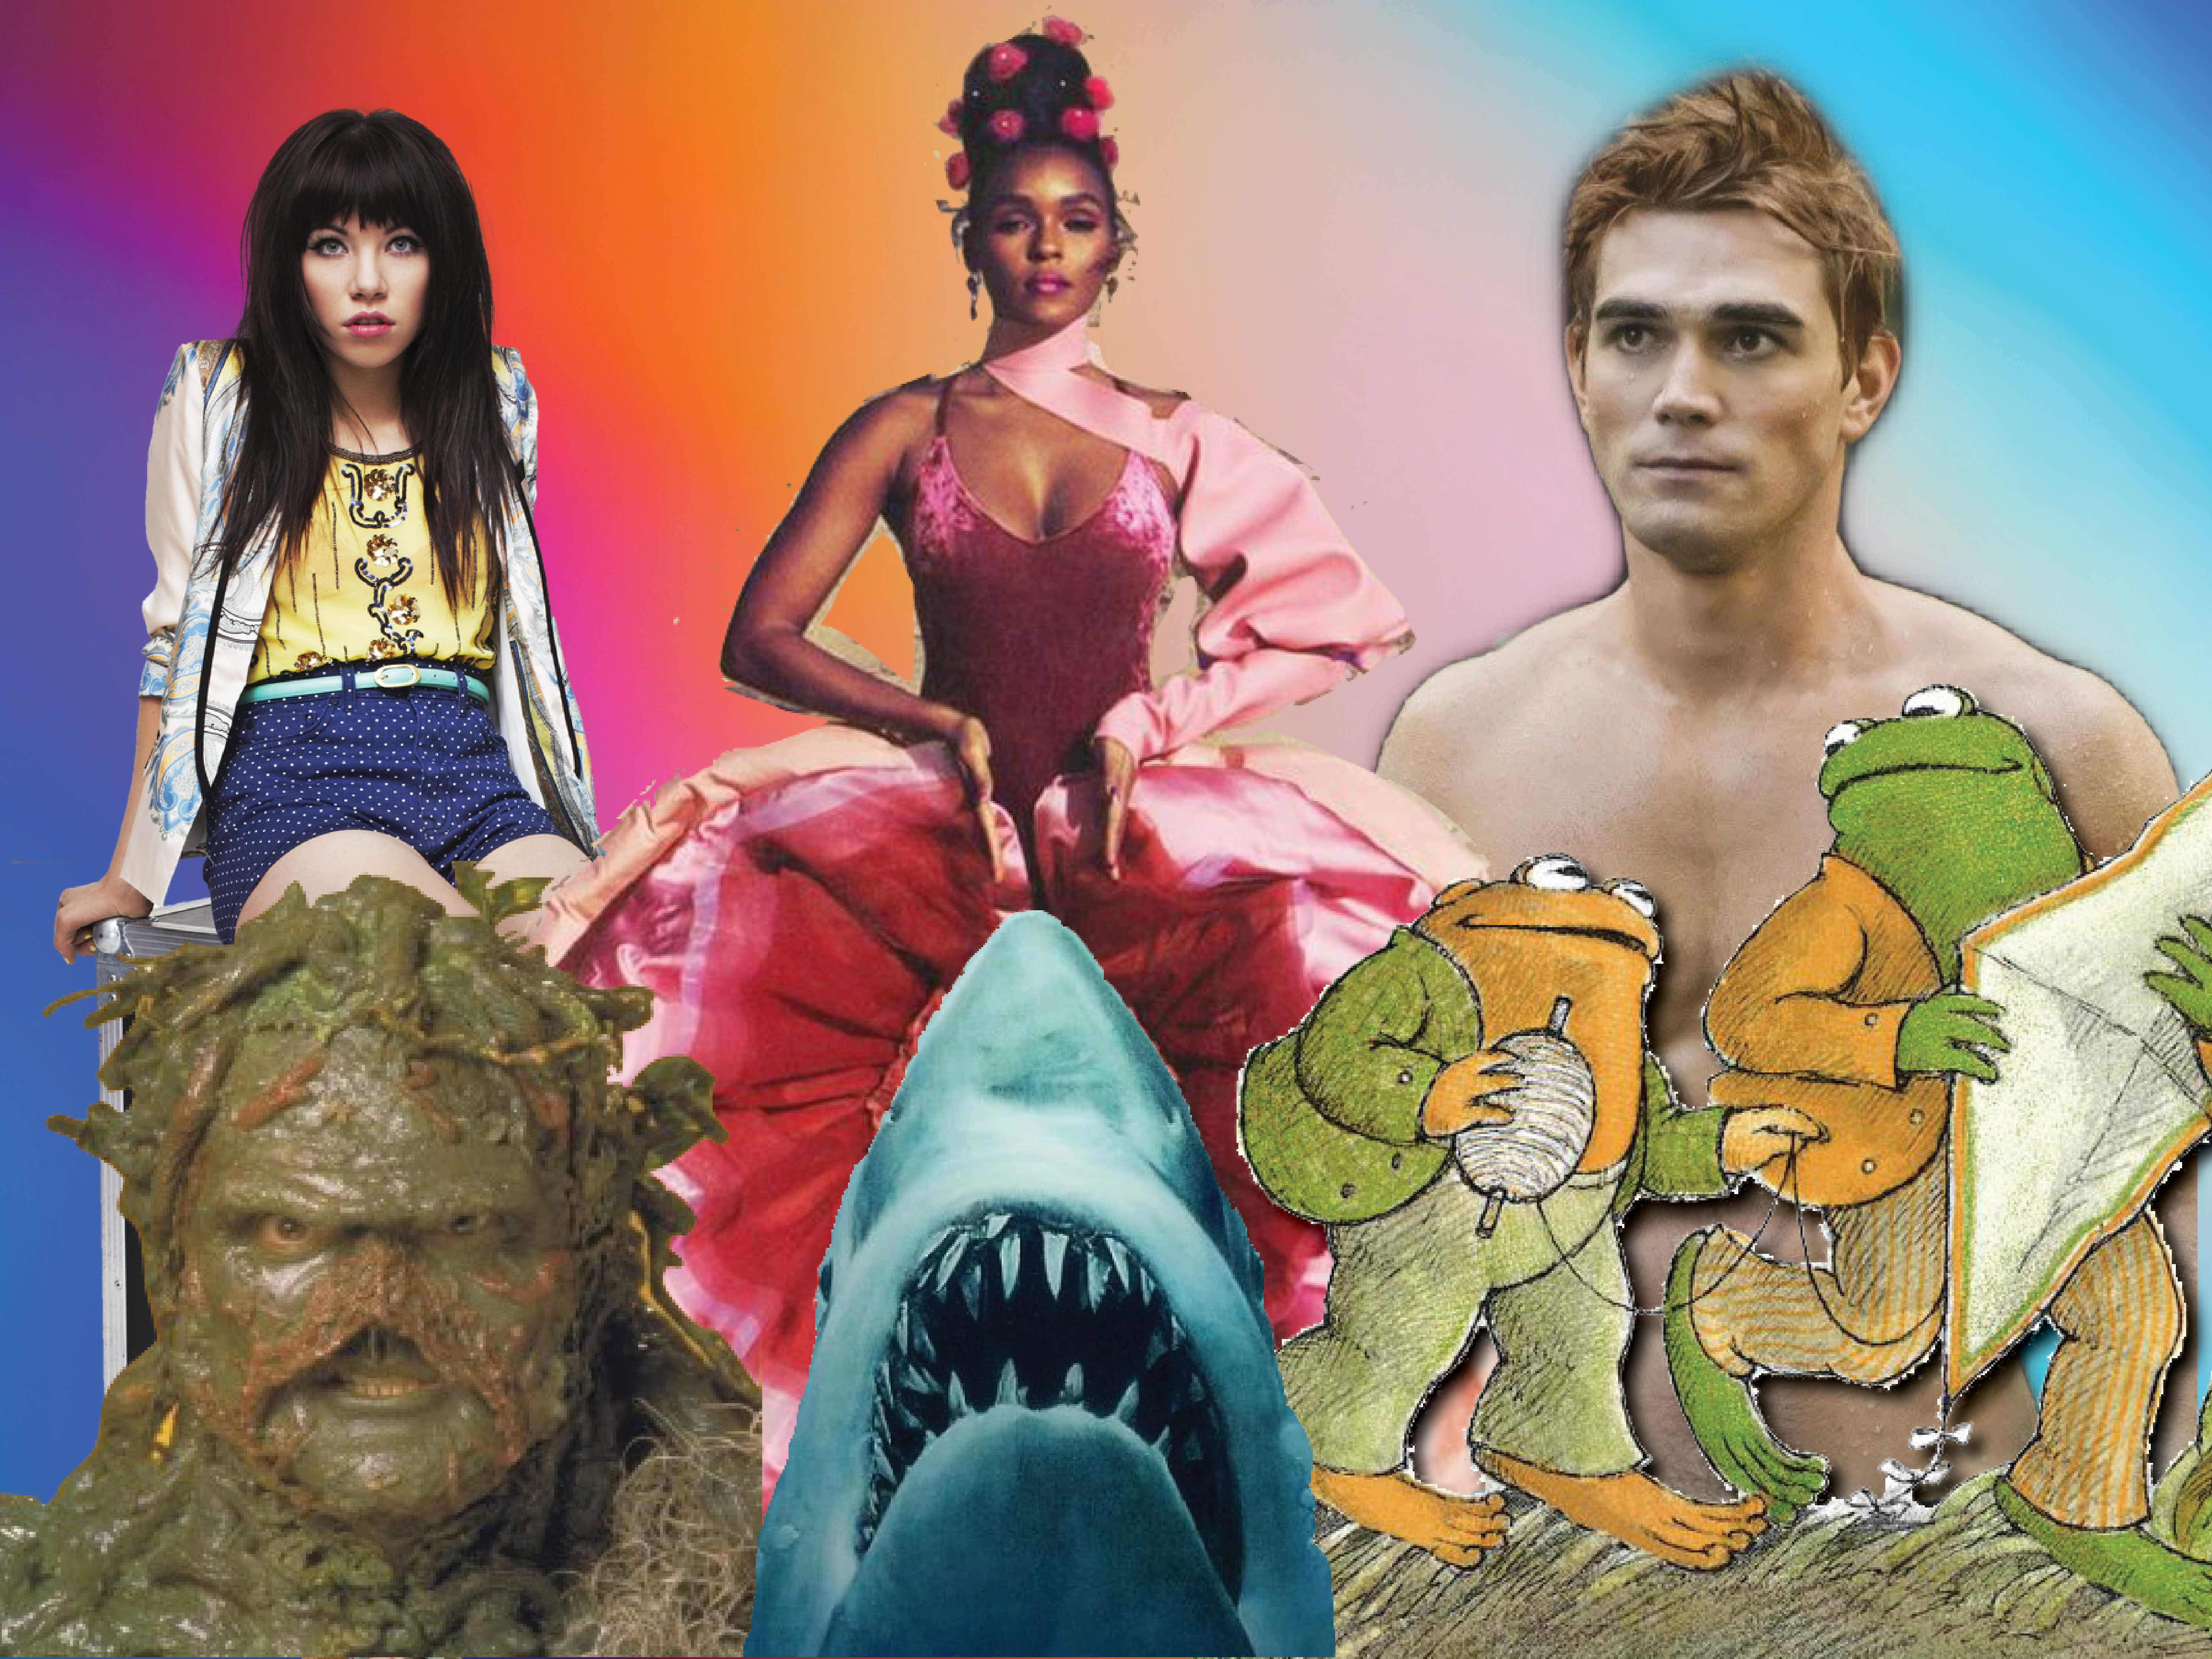 Cut outs of Carly Rae Jepsen, Janelle Monae, KJ Apa, Swamp Thing, Jaws, and Frog and Toad against a rainbow backdrop